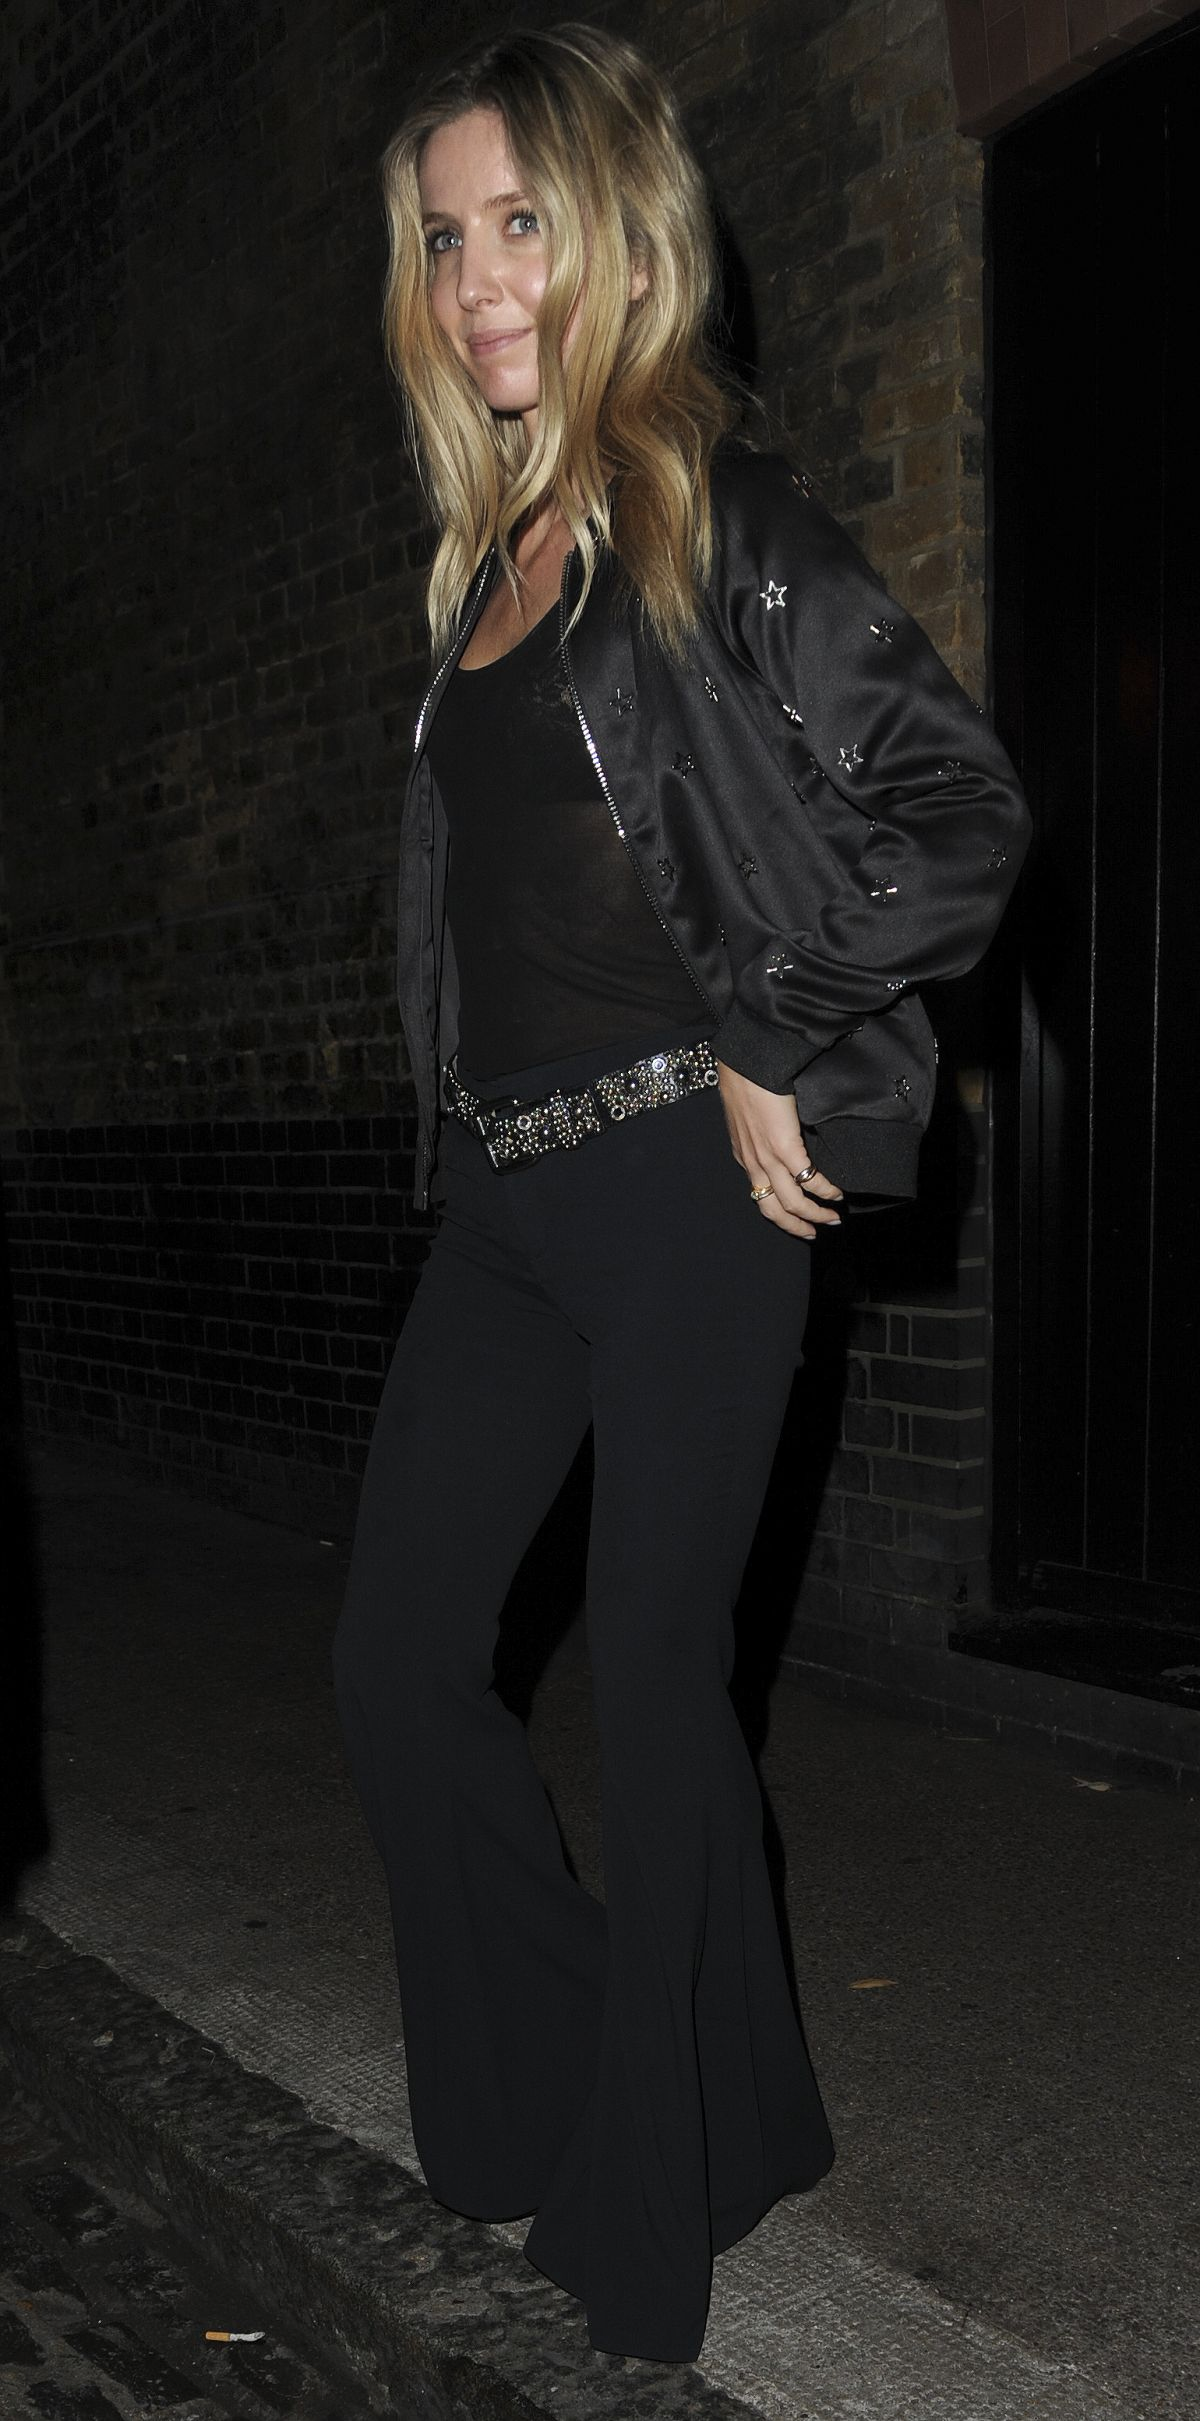 ANNABELLE WALLIS at Chiltern Firehouse in London 06/03/2017